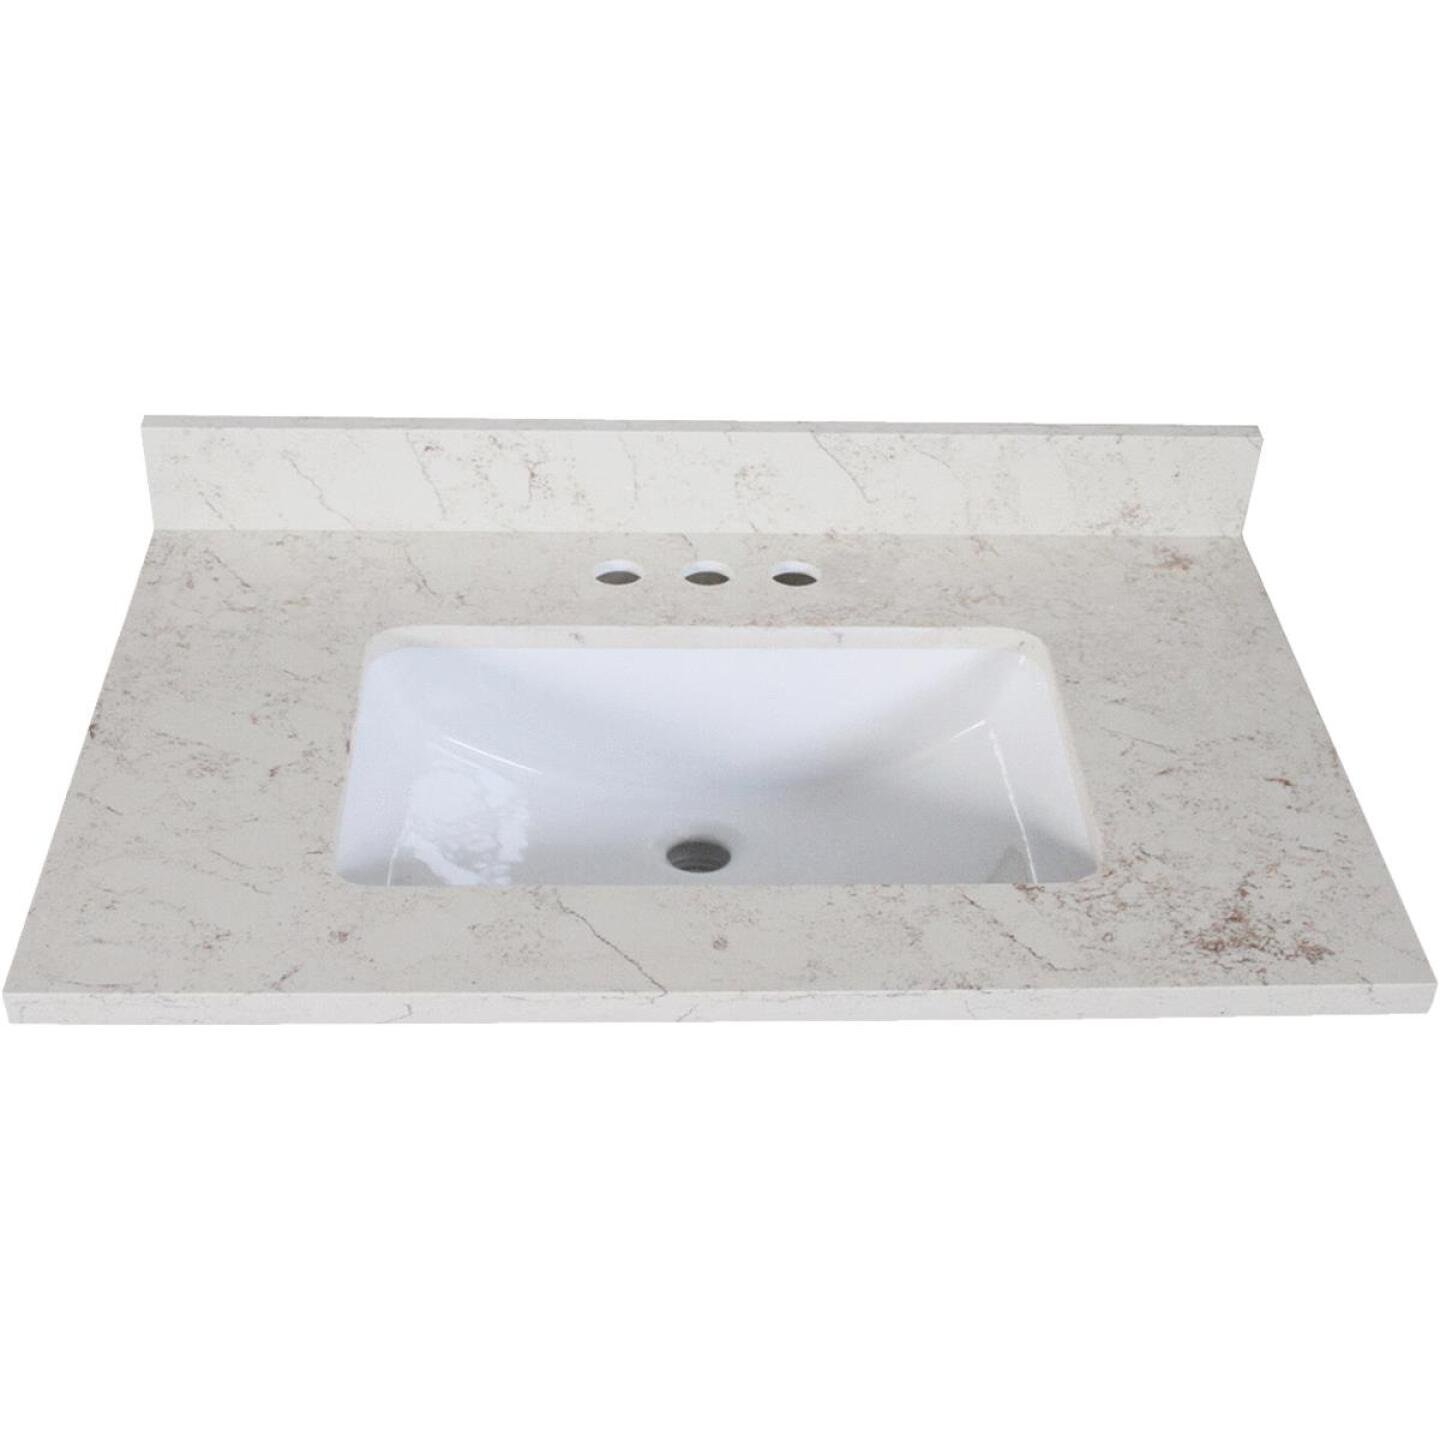 Design House 49 In. W x 22 In. D Giallo Quartz Vanity Top with Wave Bowl Image 1